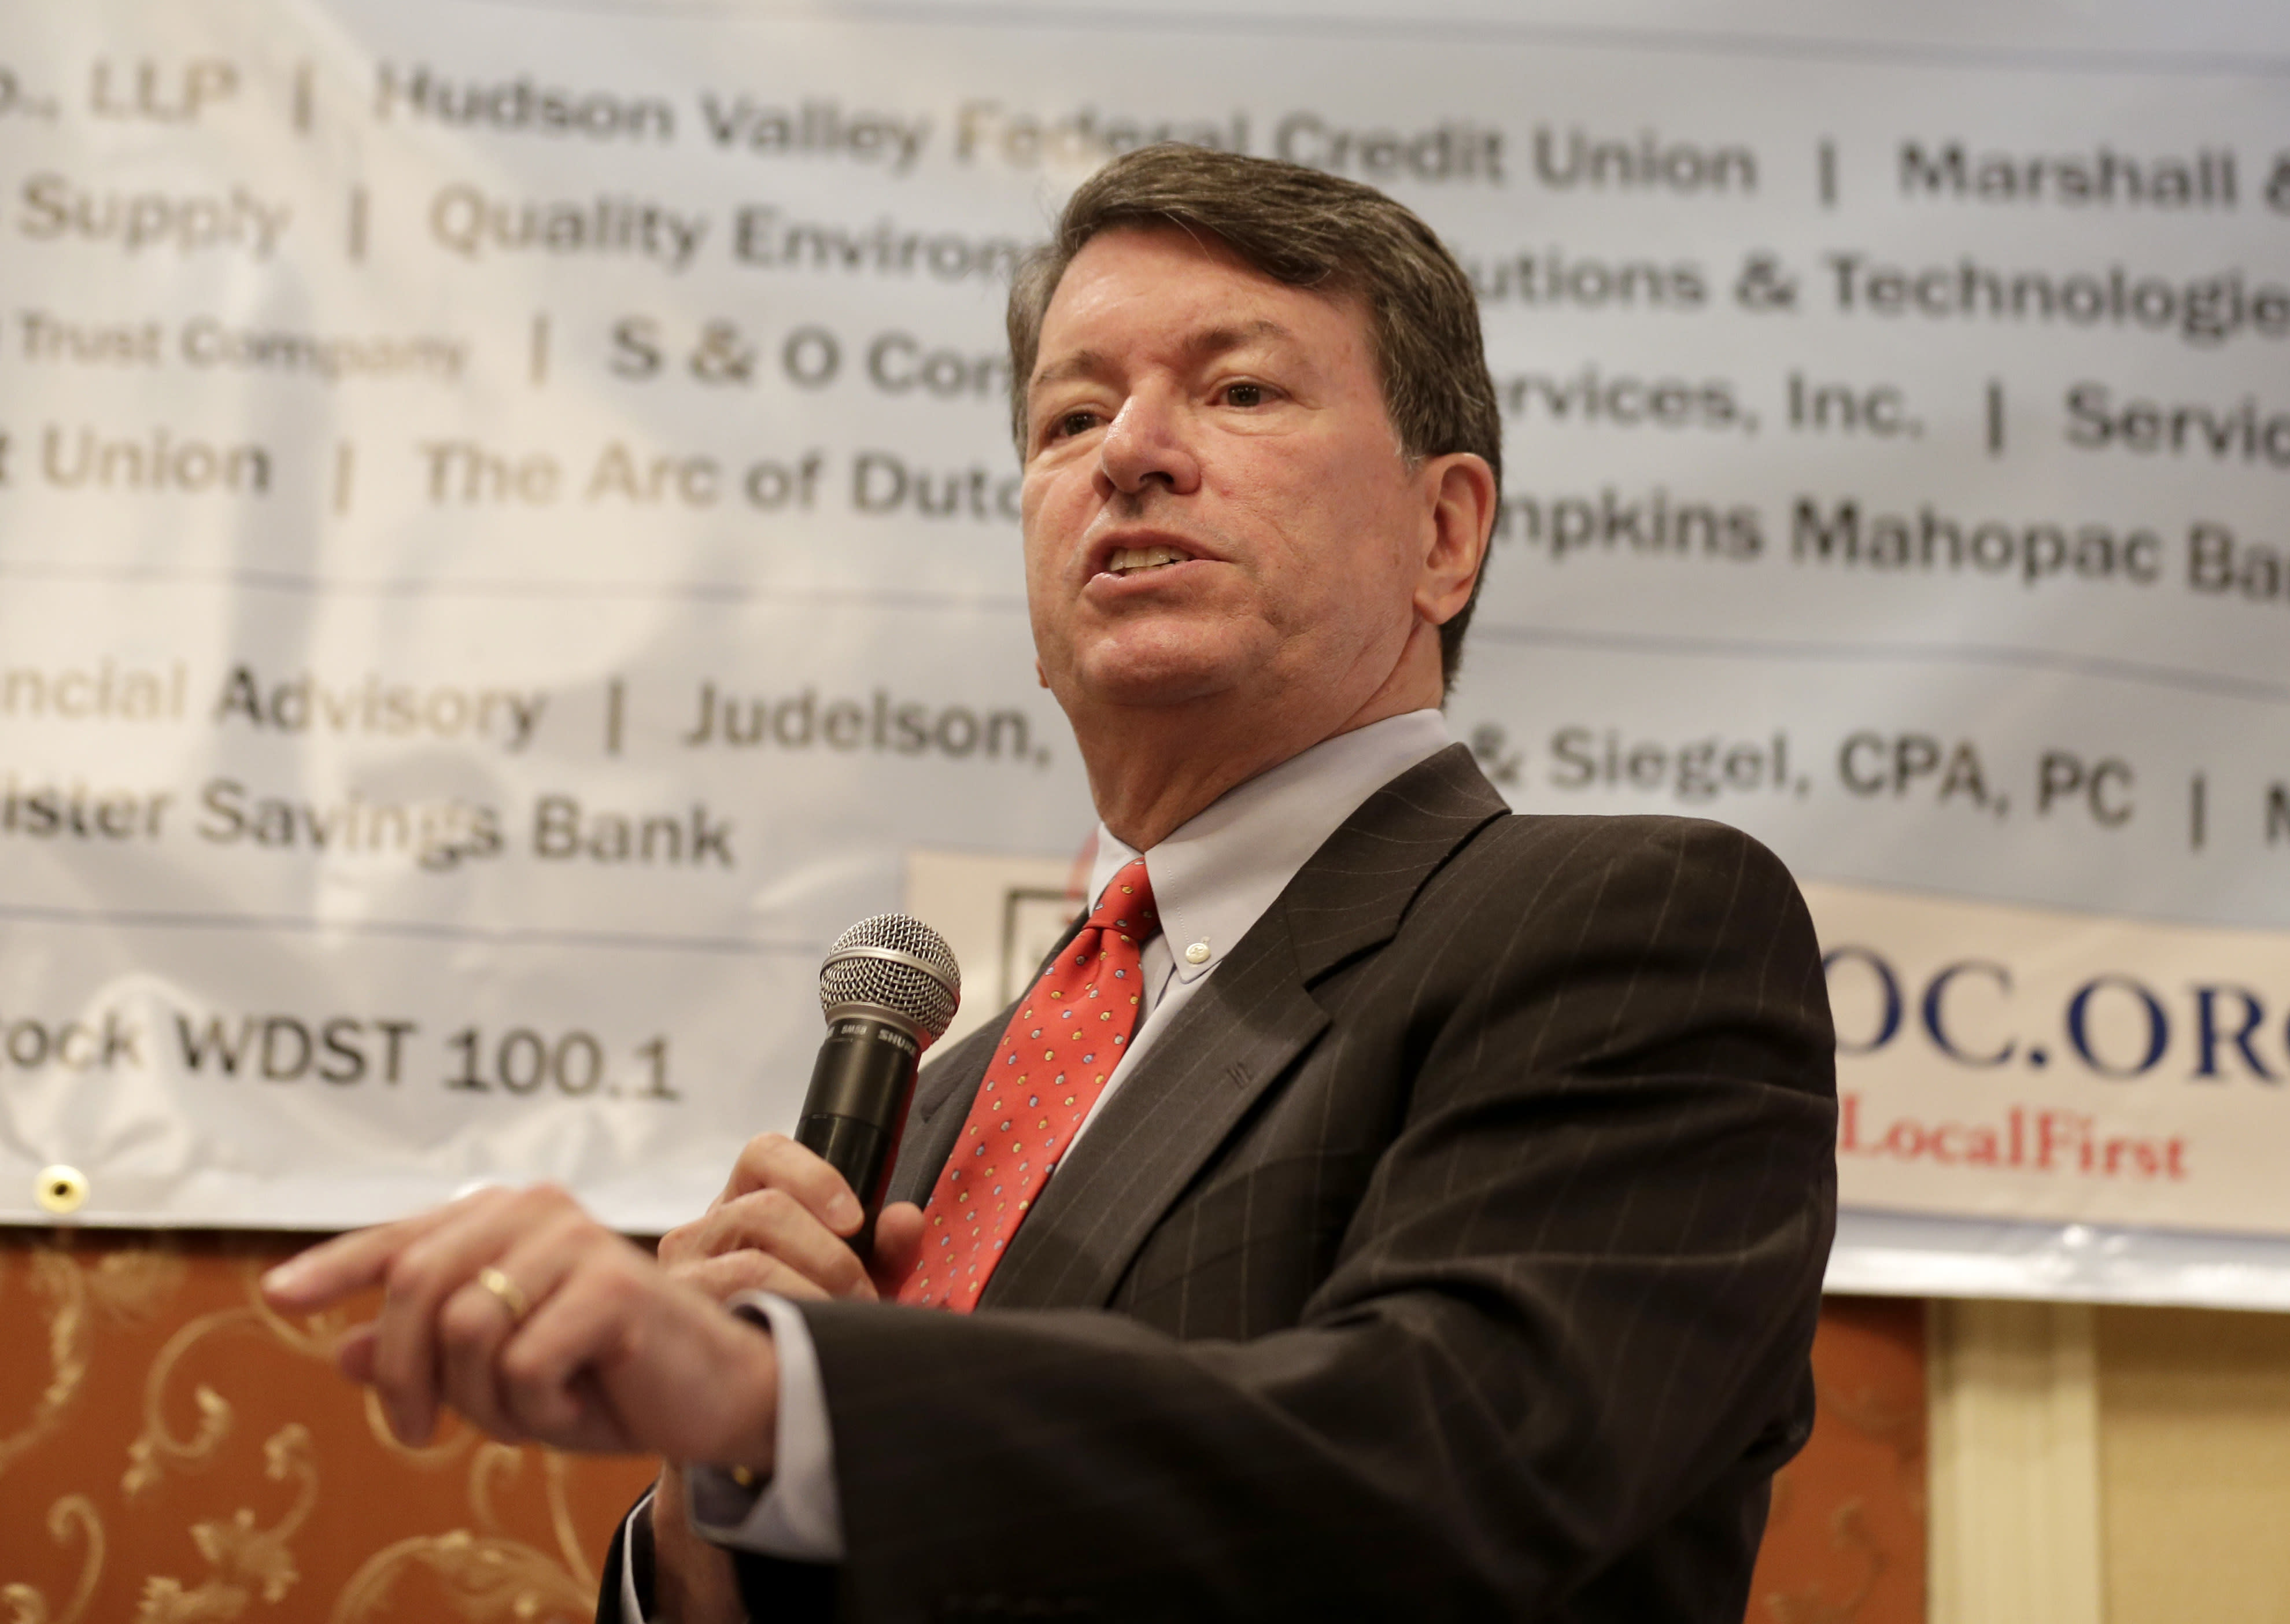 Republican U.S. Rep. John Faso speaks during a candidate forum in Poughkeepsie, N.Y., Wednesday, Oct. 17, 2018. Hip-hop, health care and Brett Kavanaugh have emerged as issues in a too-close-to-call congressional race in New York's Hudson Valley that pits the freshman Republican congressman against a rapper-turned-corporate lawyer seeking his first political office. (AP Photo/Seth Wenig)